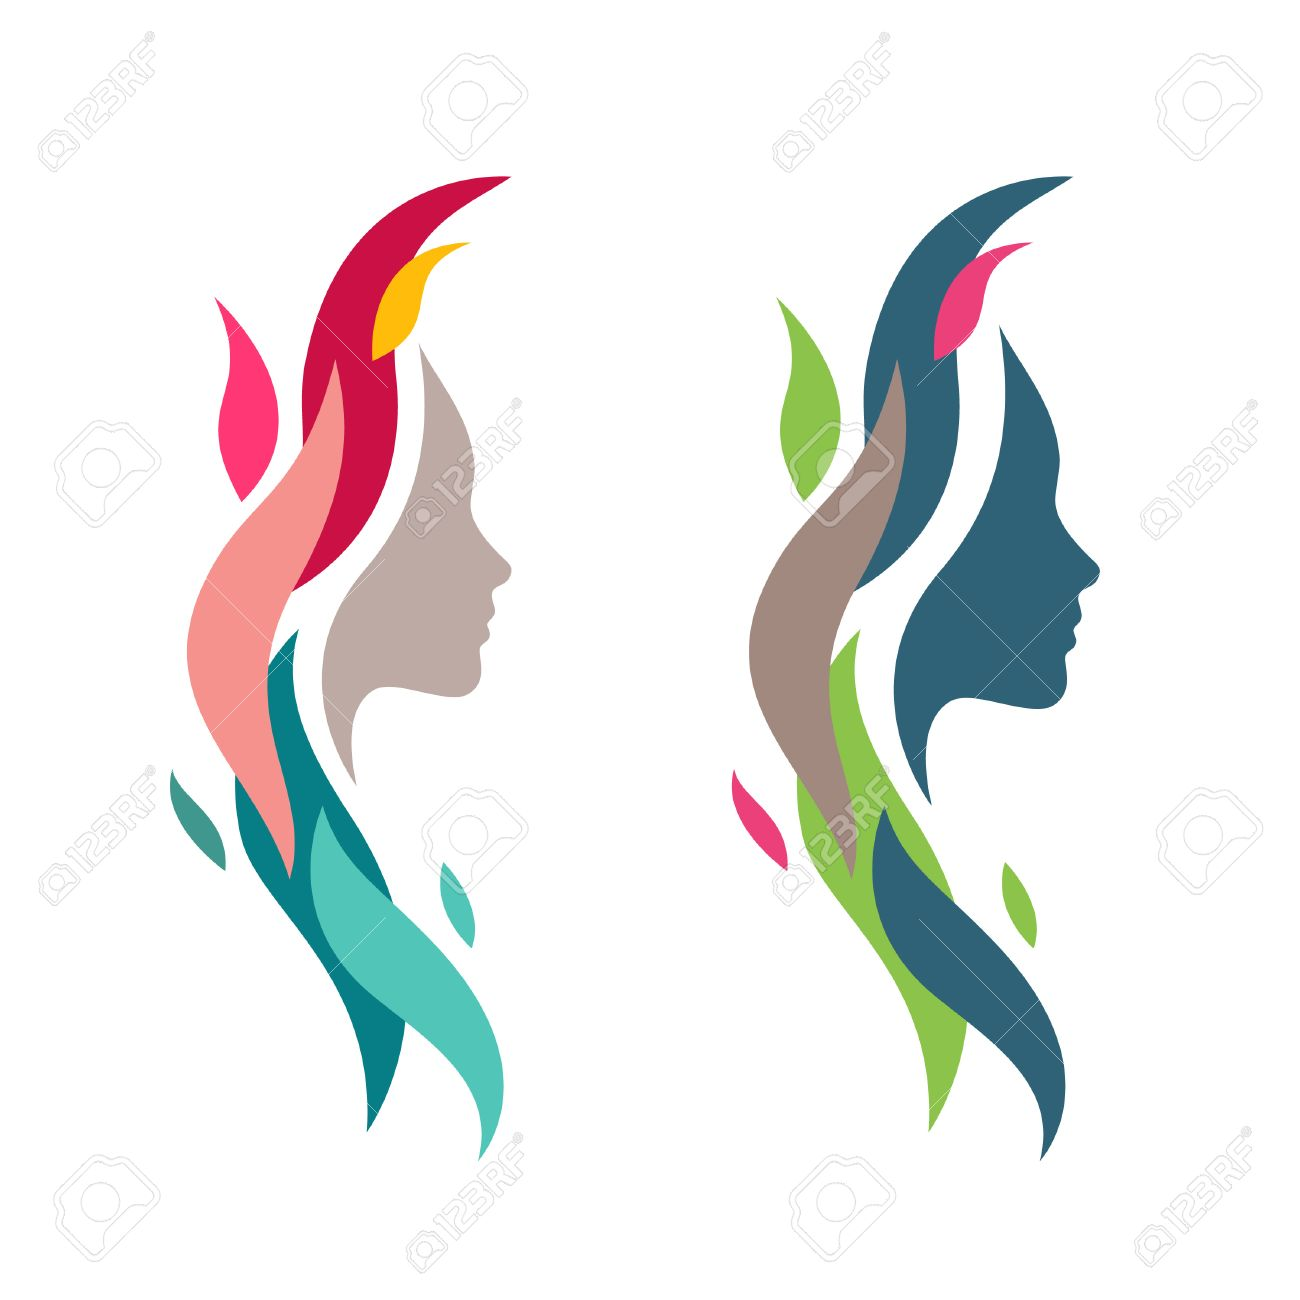 Colorful Woman Face with Waves. Abstract Female Head Silhouette...